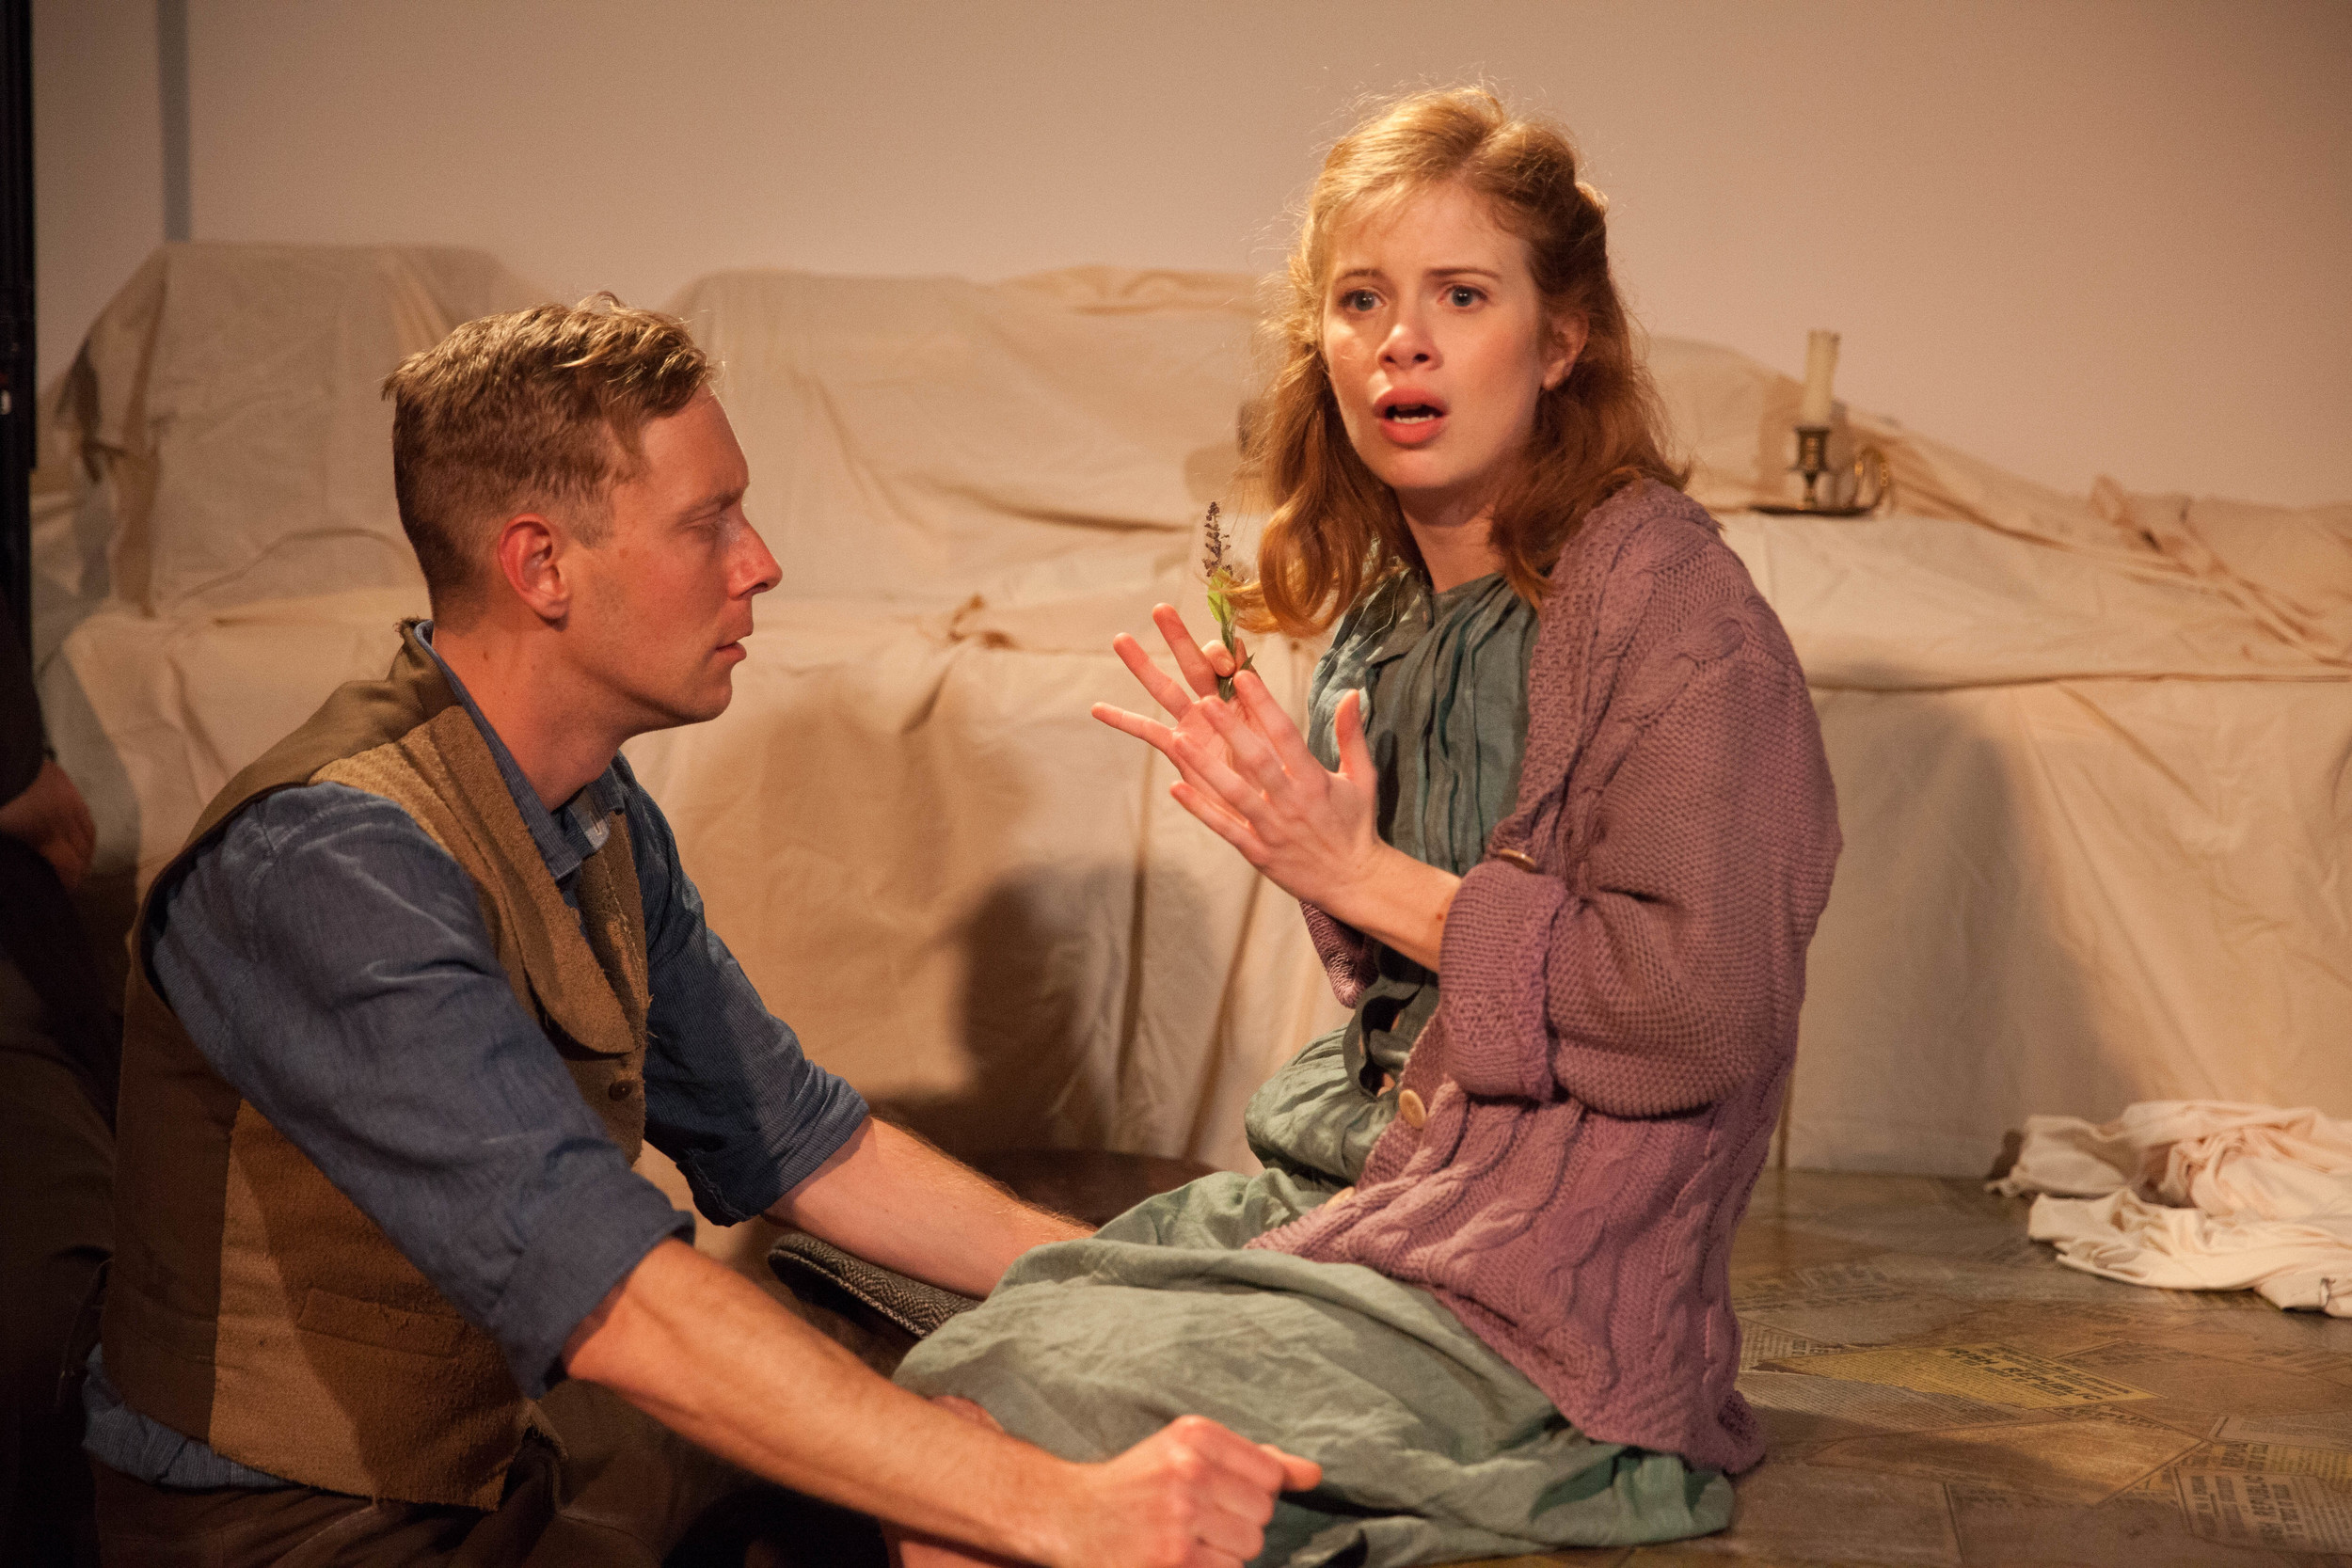 Dylan Morrison Myers and Megan Graves play young revolutionaries in  Wild Sky  (Solas Nua).